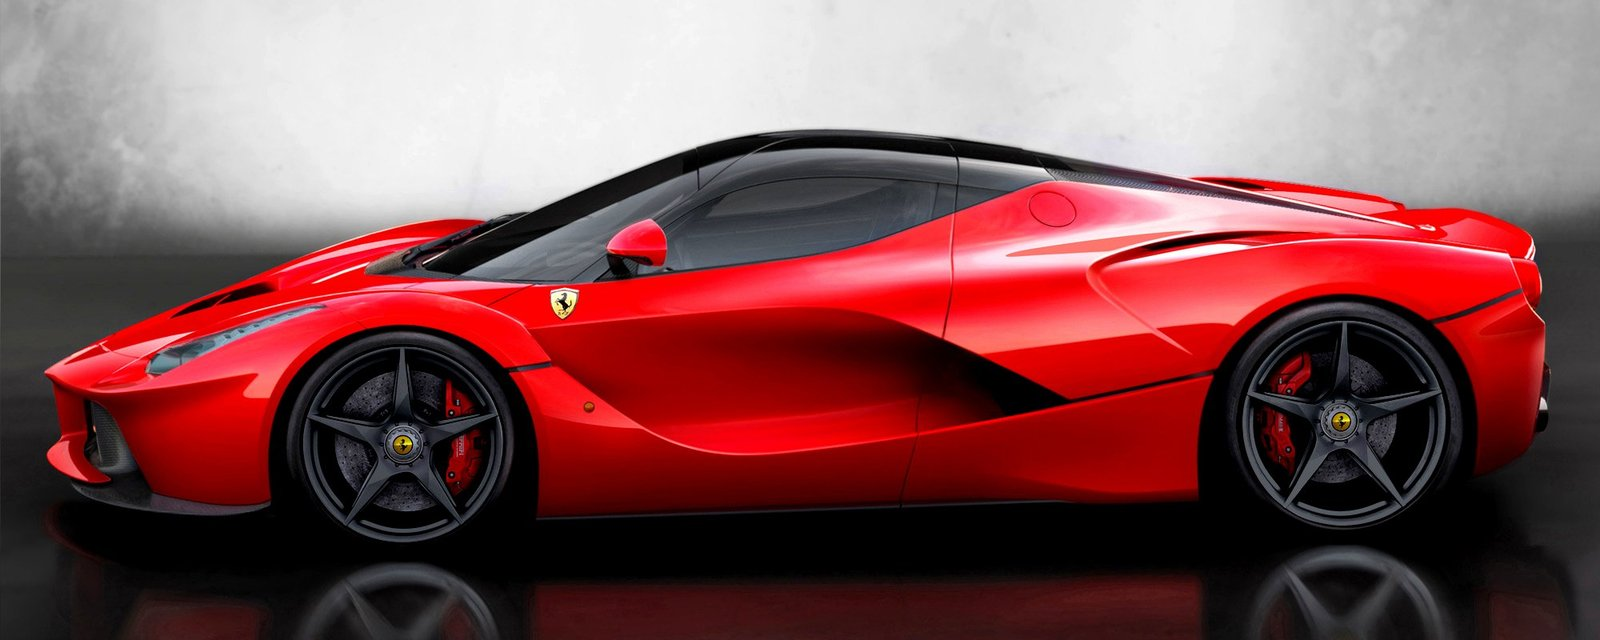 The unseen concepts of laferrari project f150 interesting stuff the unseen concepts of laferrari project f150 interesting stuff pinterest ferrari cars and motor works vanachro Gallery